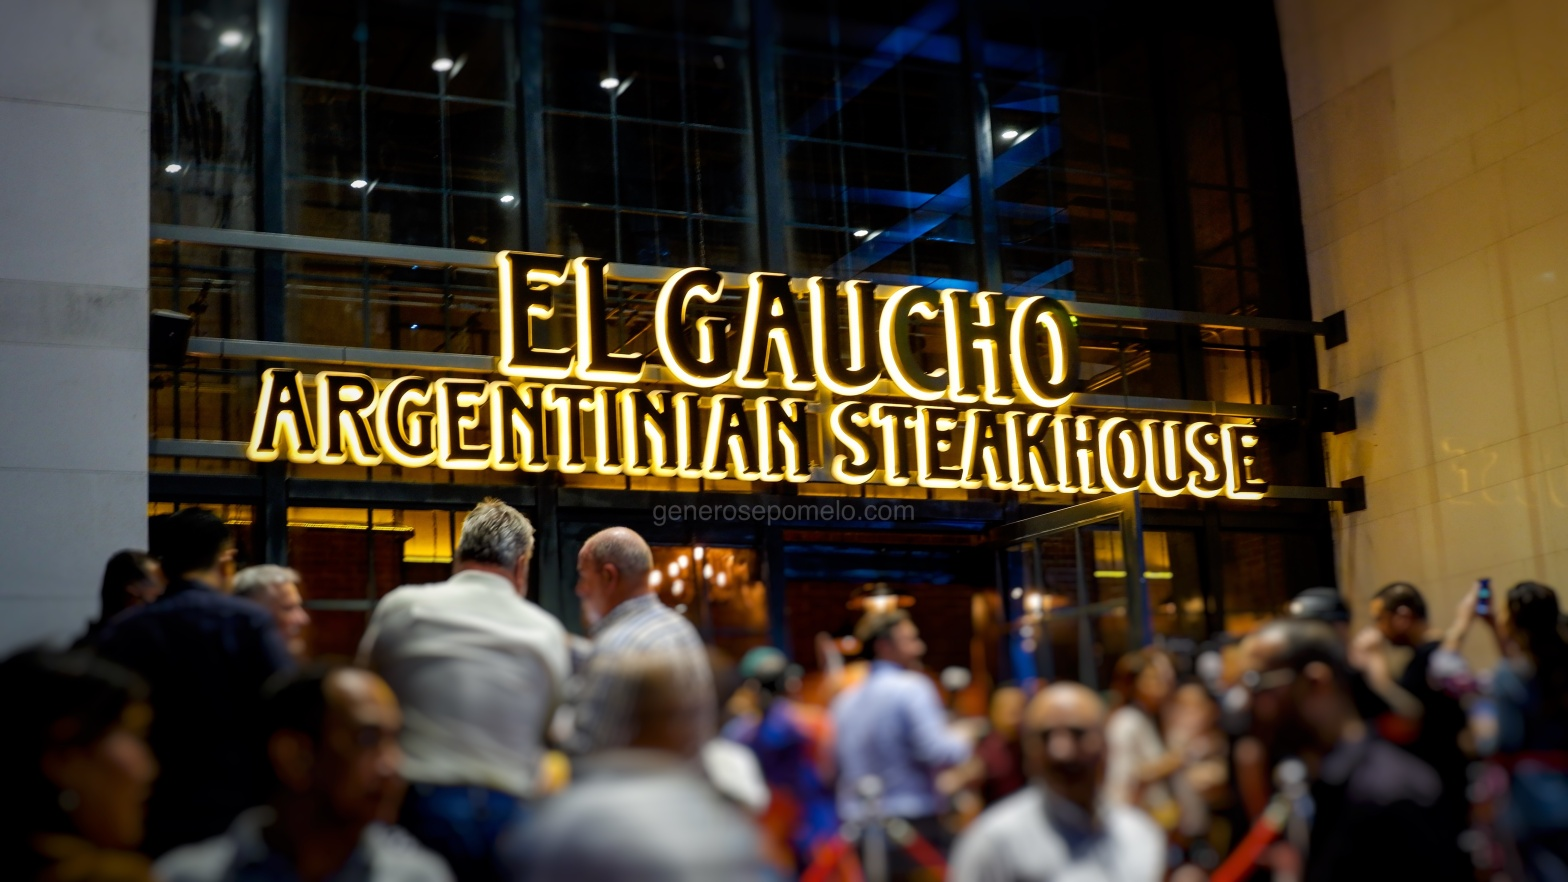 El Gaucho Argentinian Steakhouse, Makati City, Philippines,